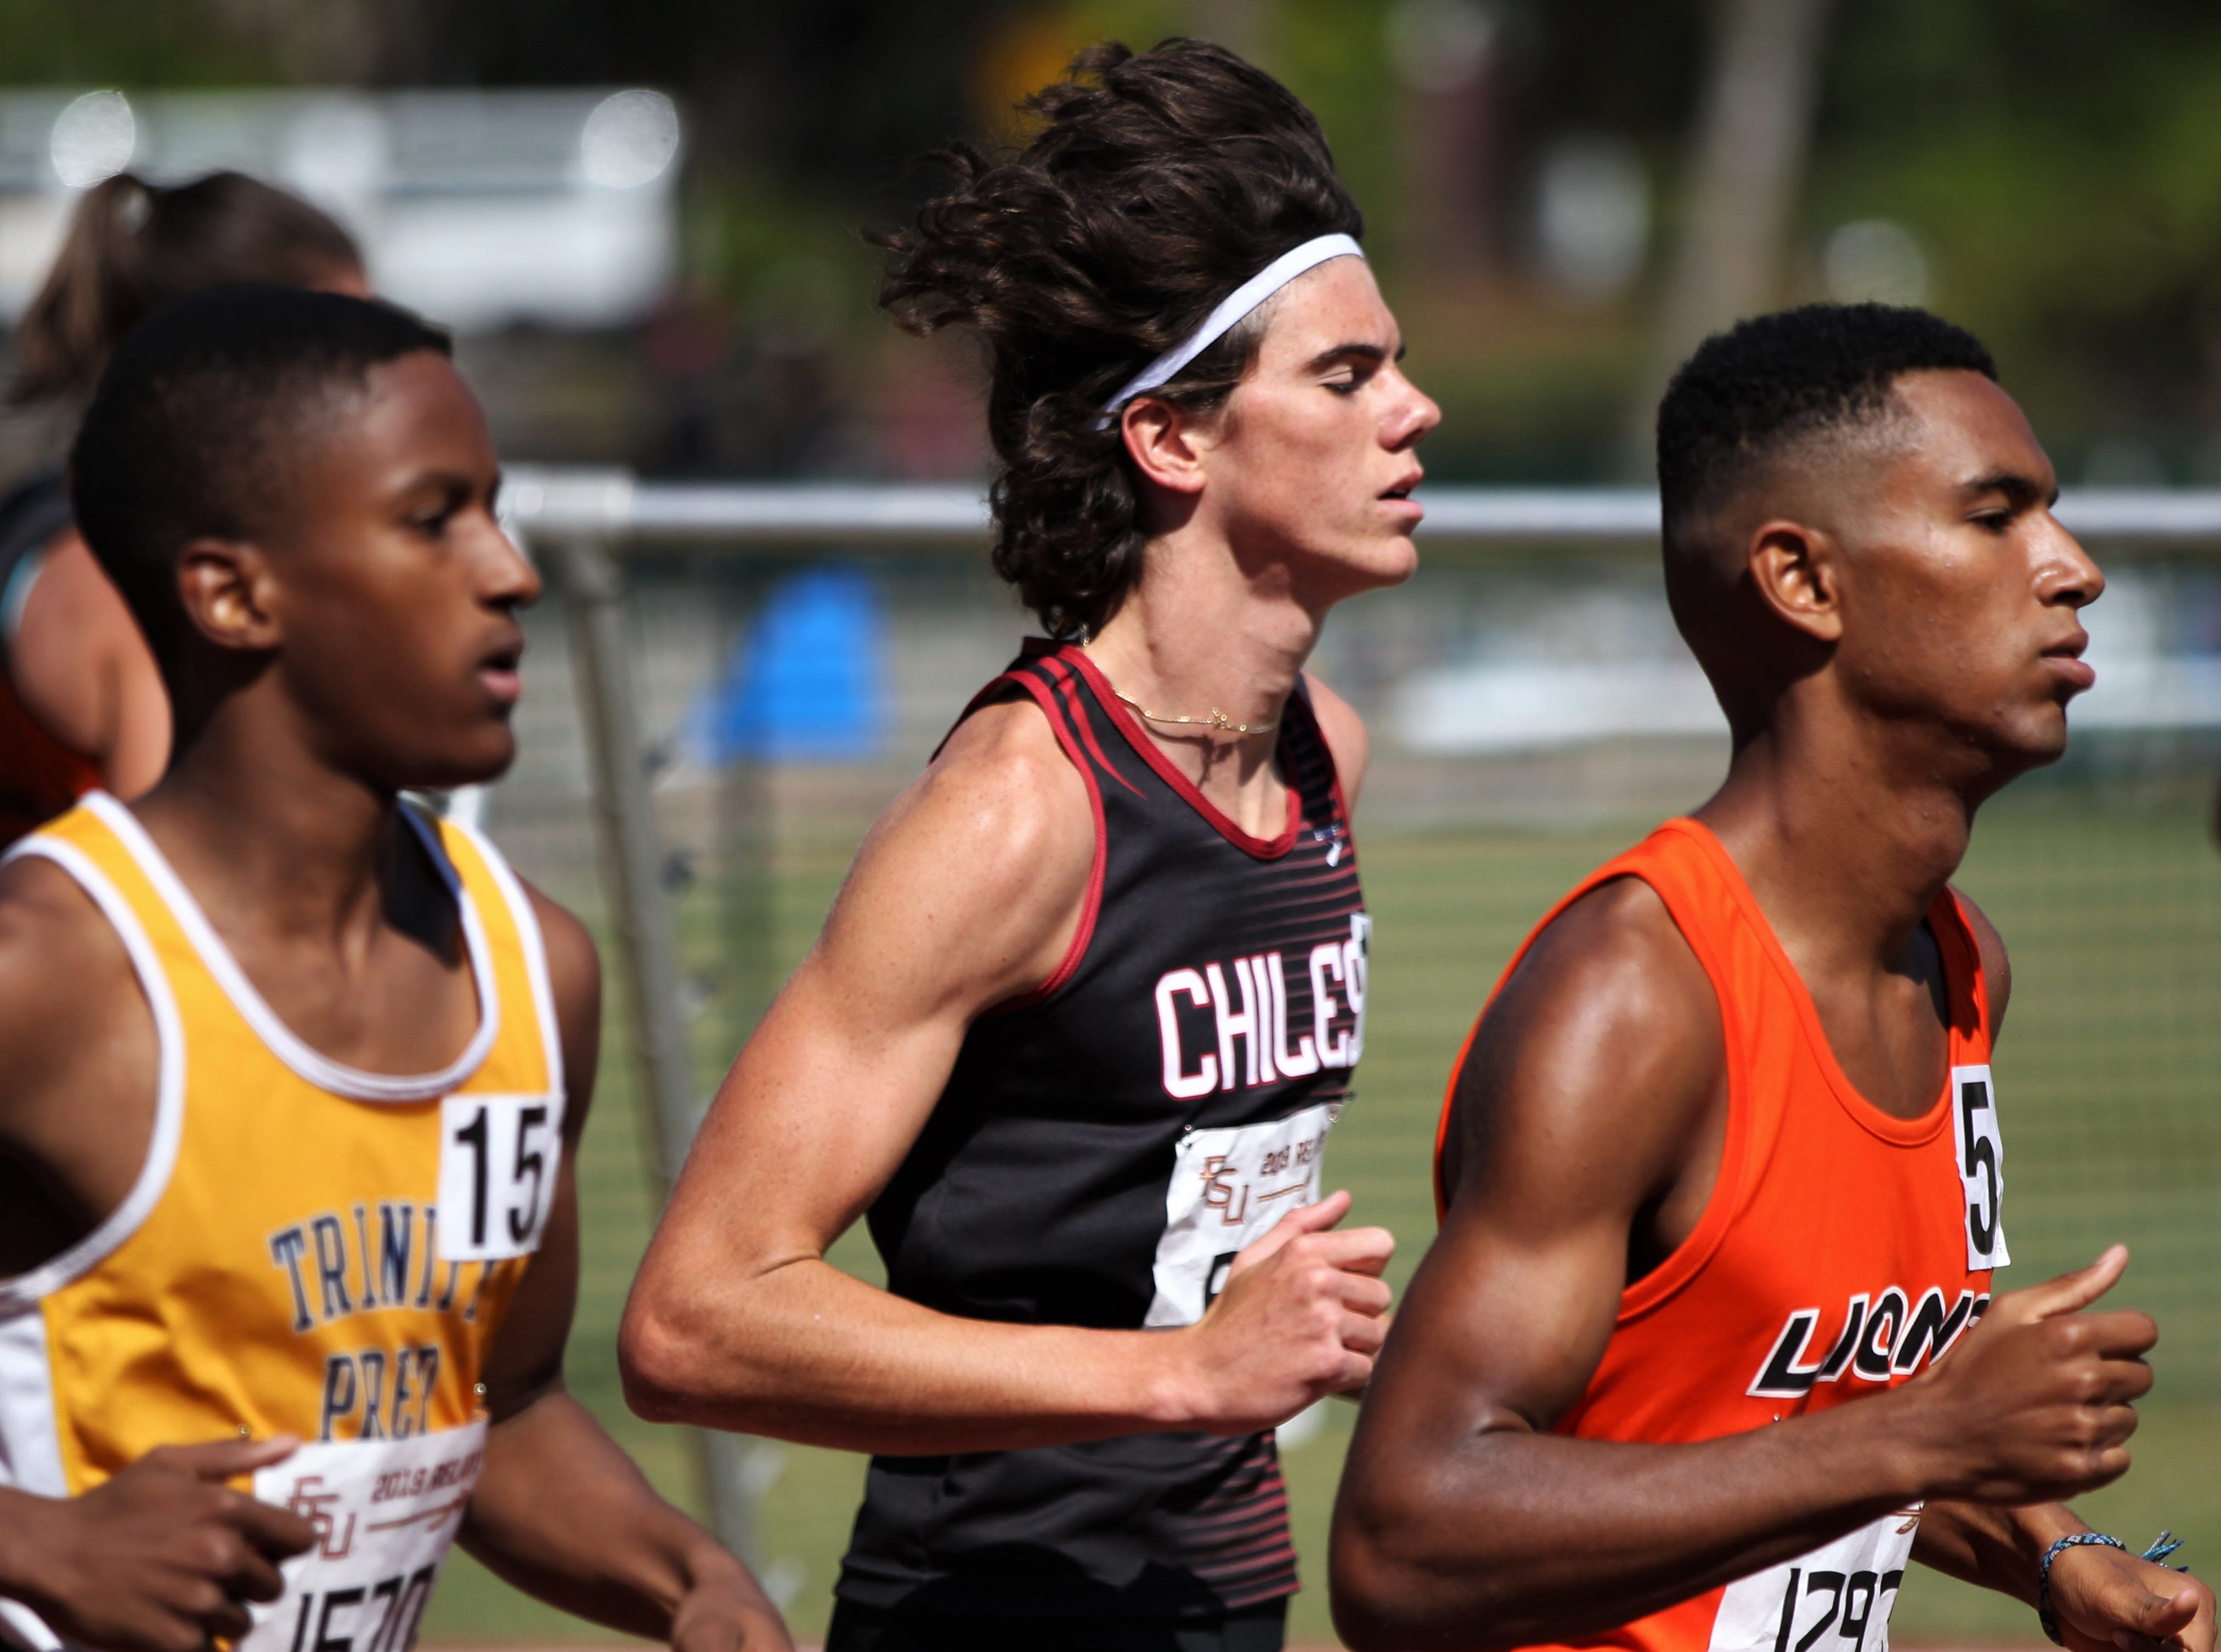 Chiles senior Connor Phillips runs the 1600 Invite during the 40th annual FSU Relays at Mike Long Track on Saturday, March 23, 2019.